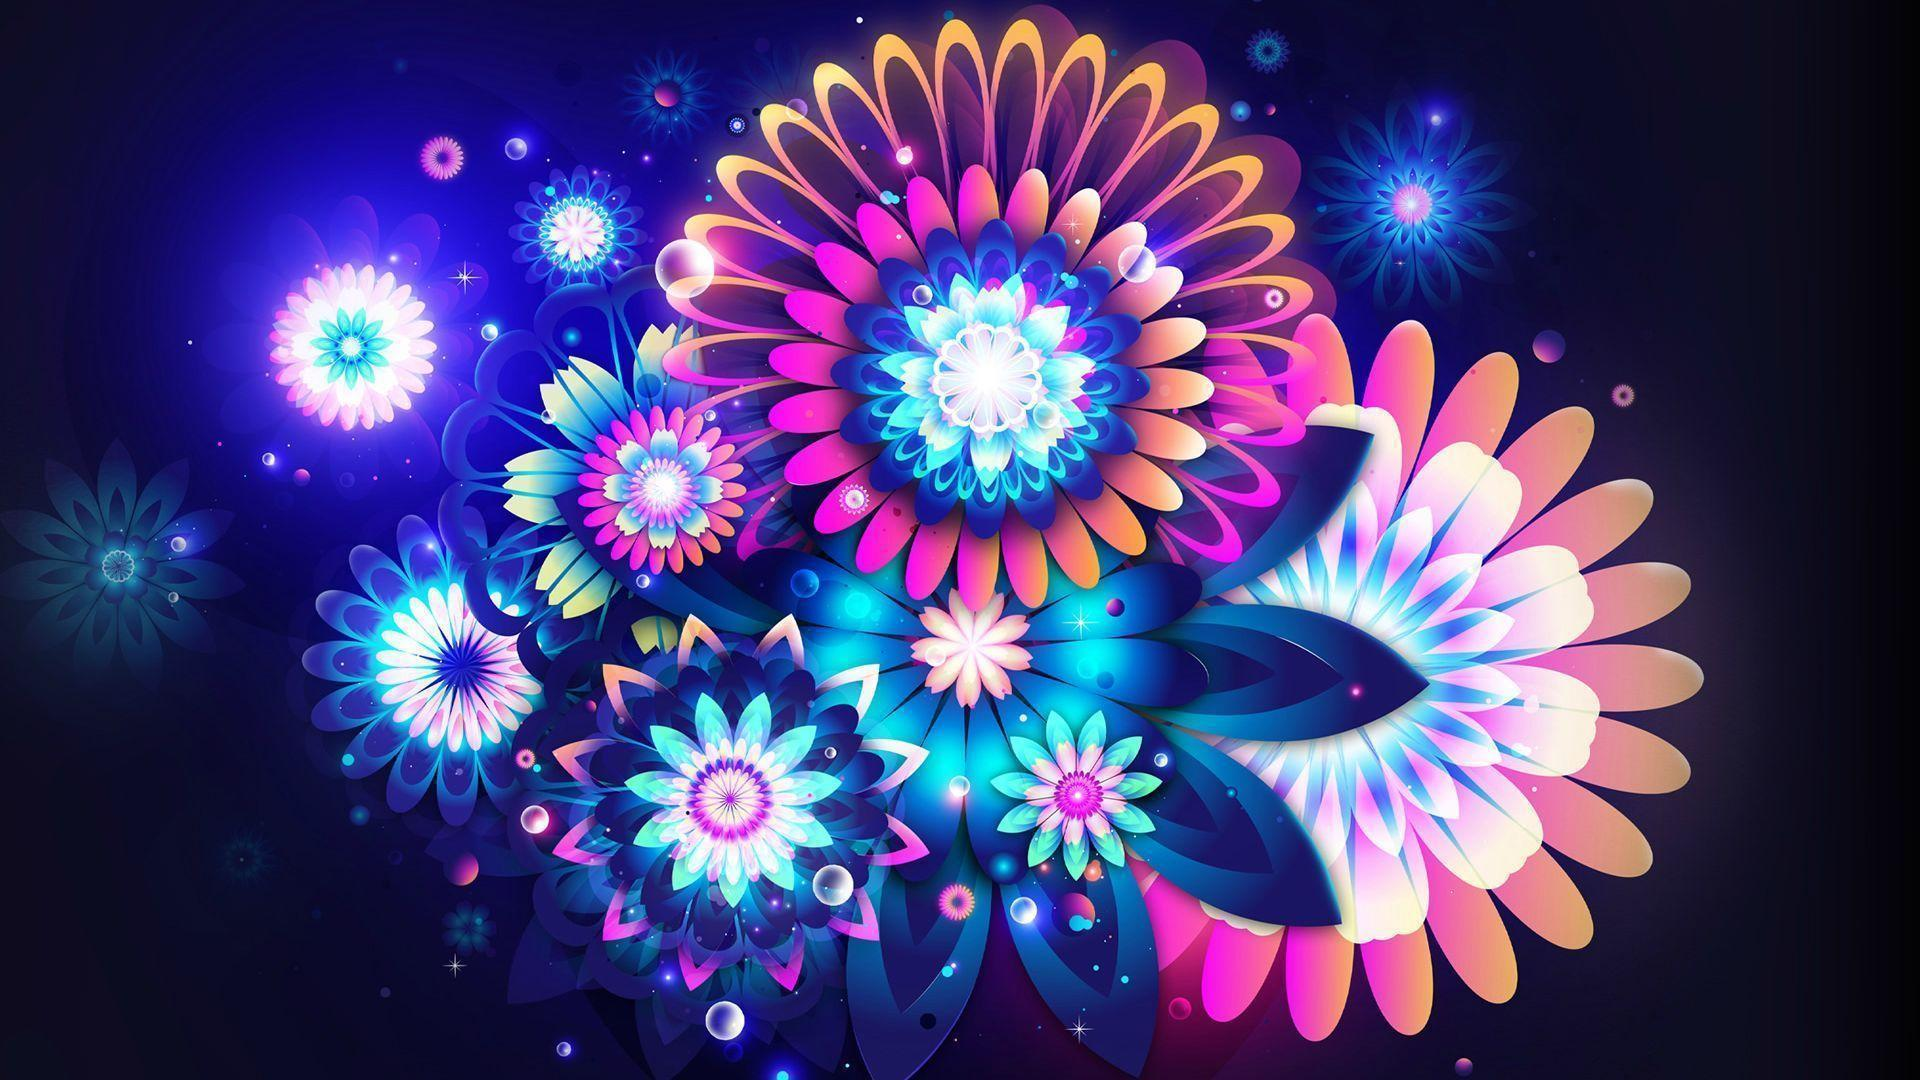 Free Colorful Flower Desktop Wallpaper: Neon Color Wallpapers